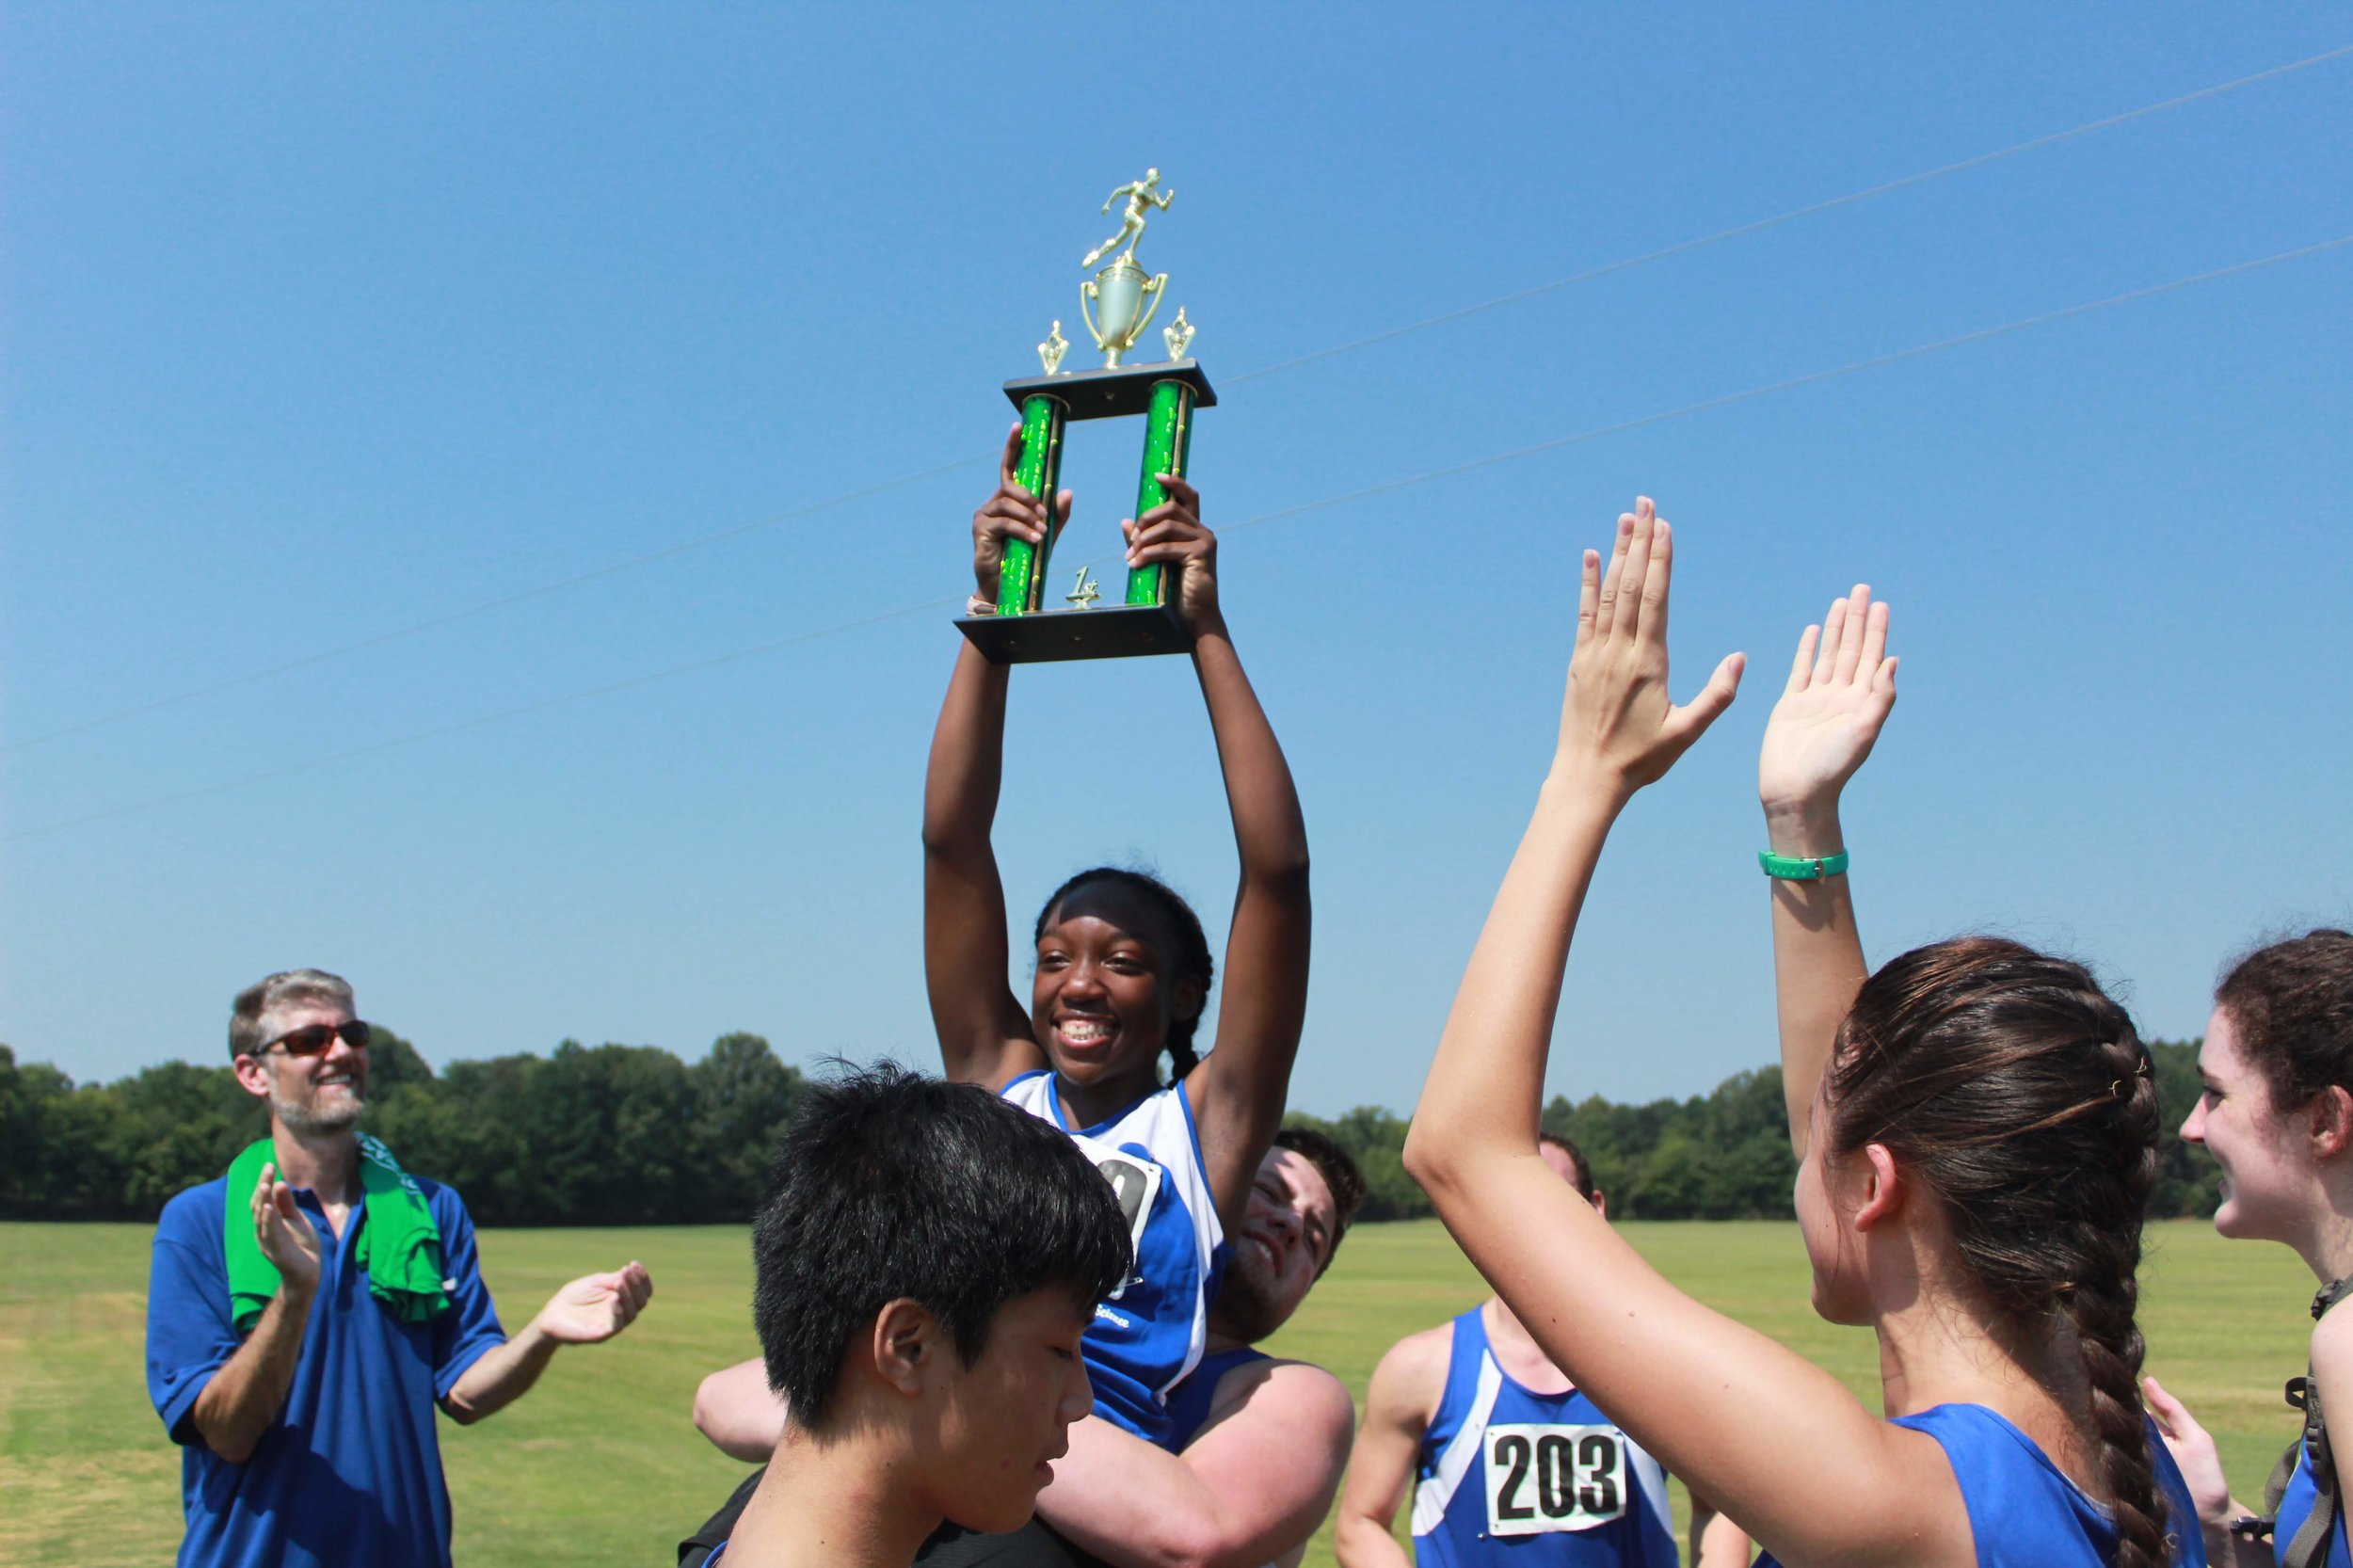 Photos courtesy of MSMS cross country team